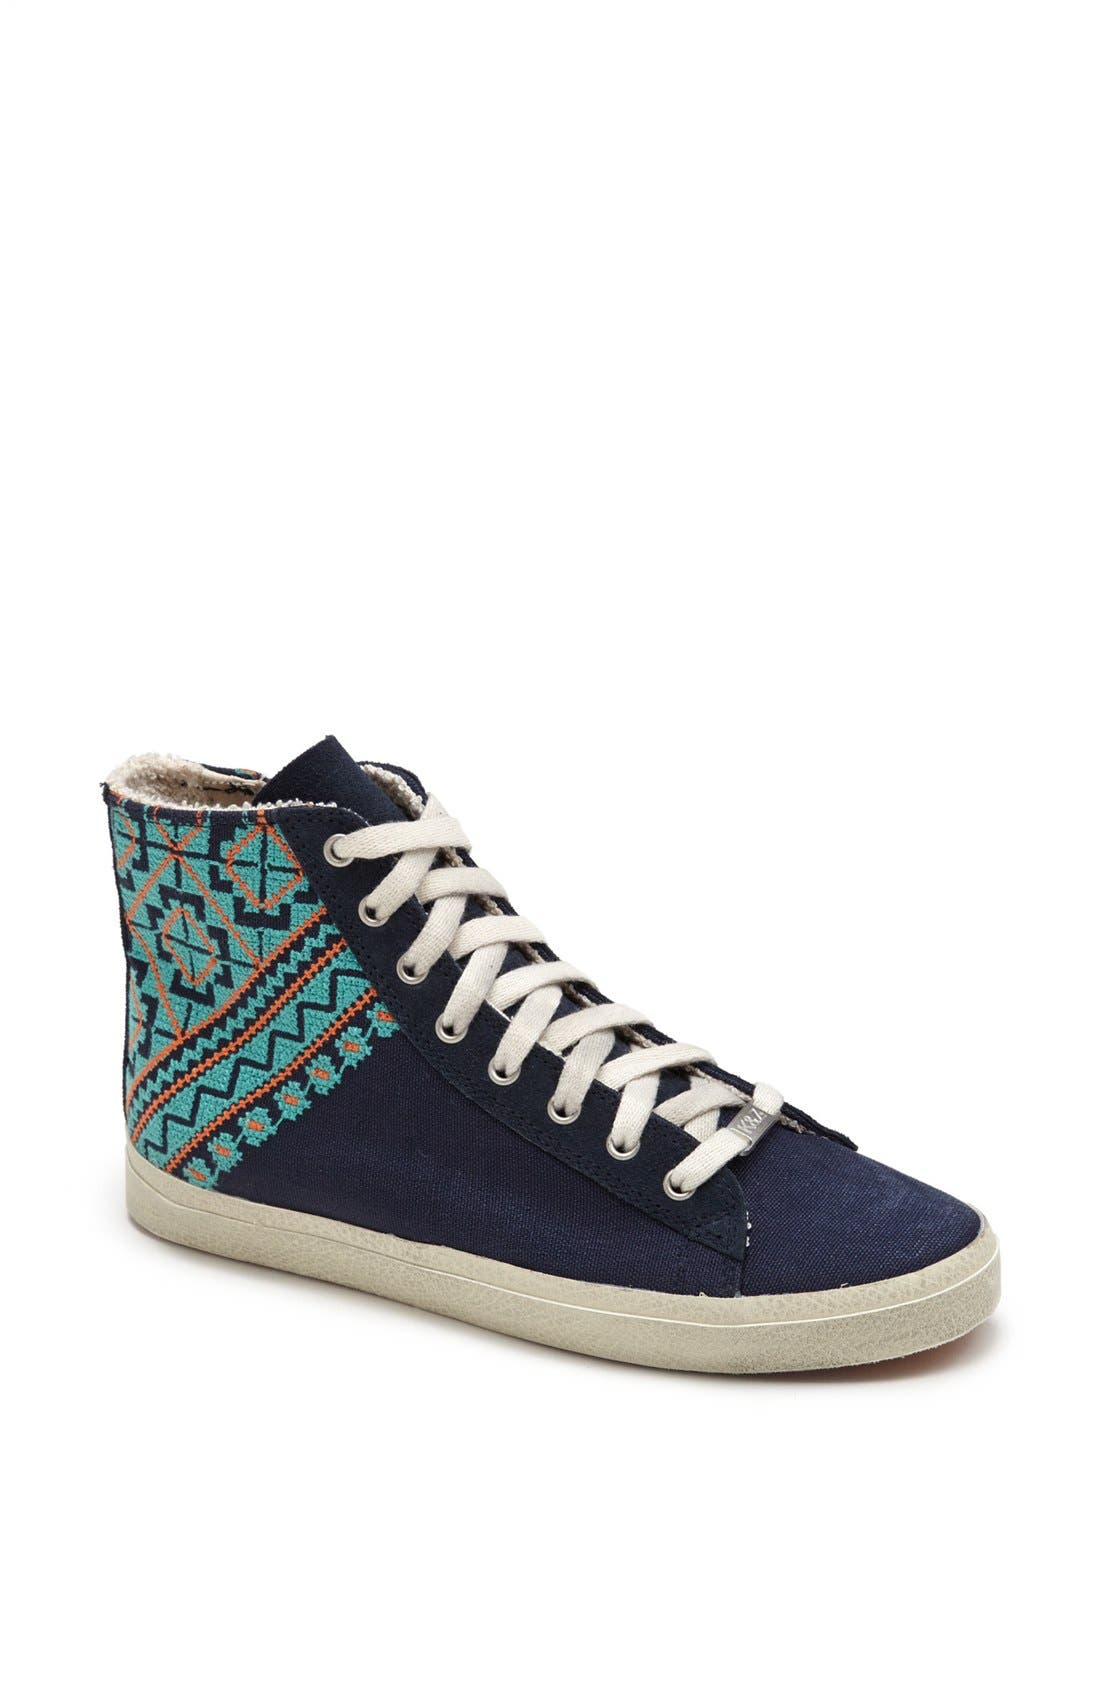 Main Image - Kim & Zozi 'Woven' High Top Sneaker